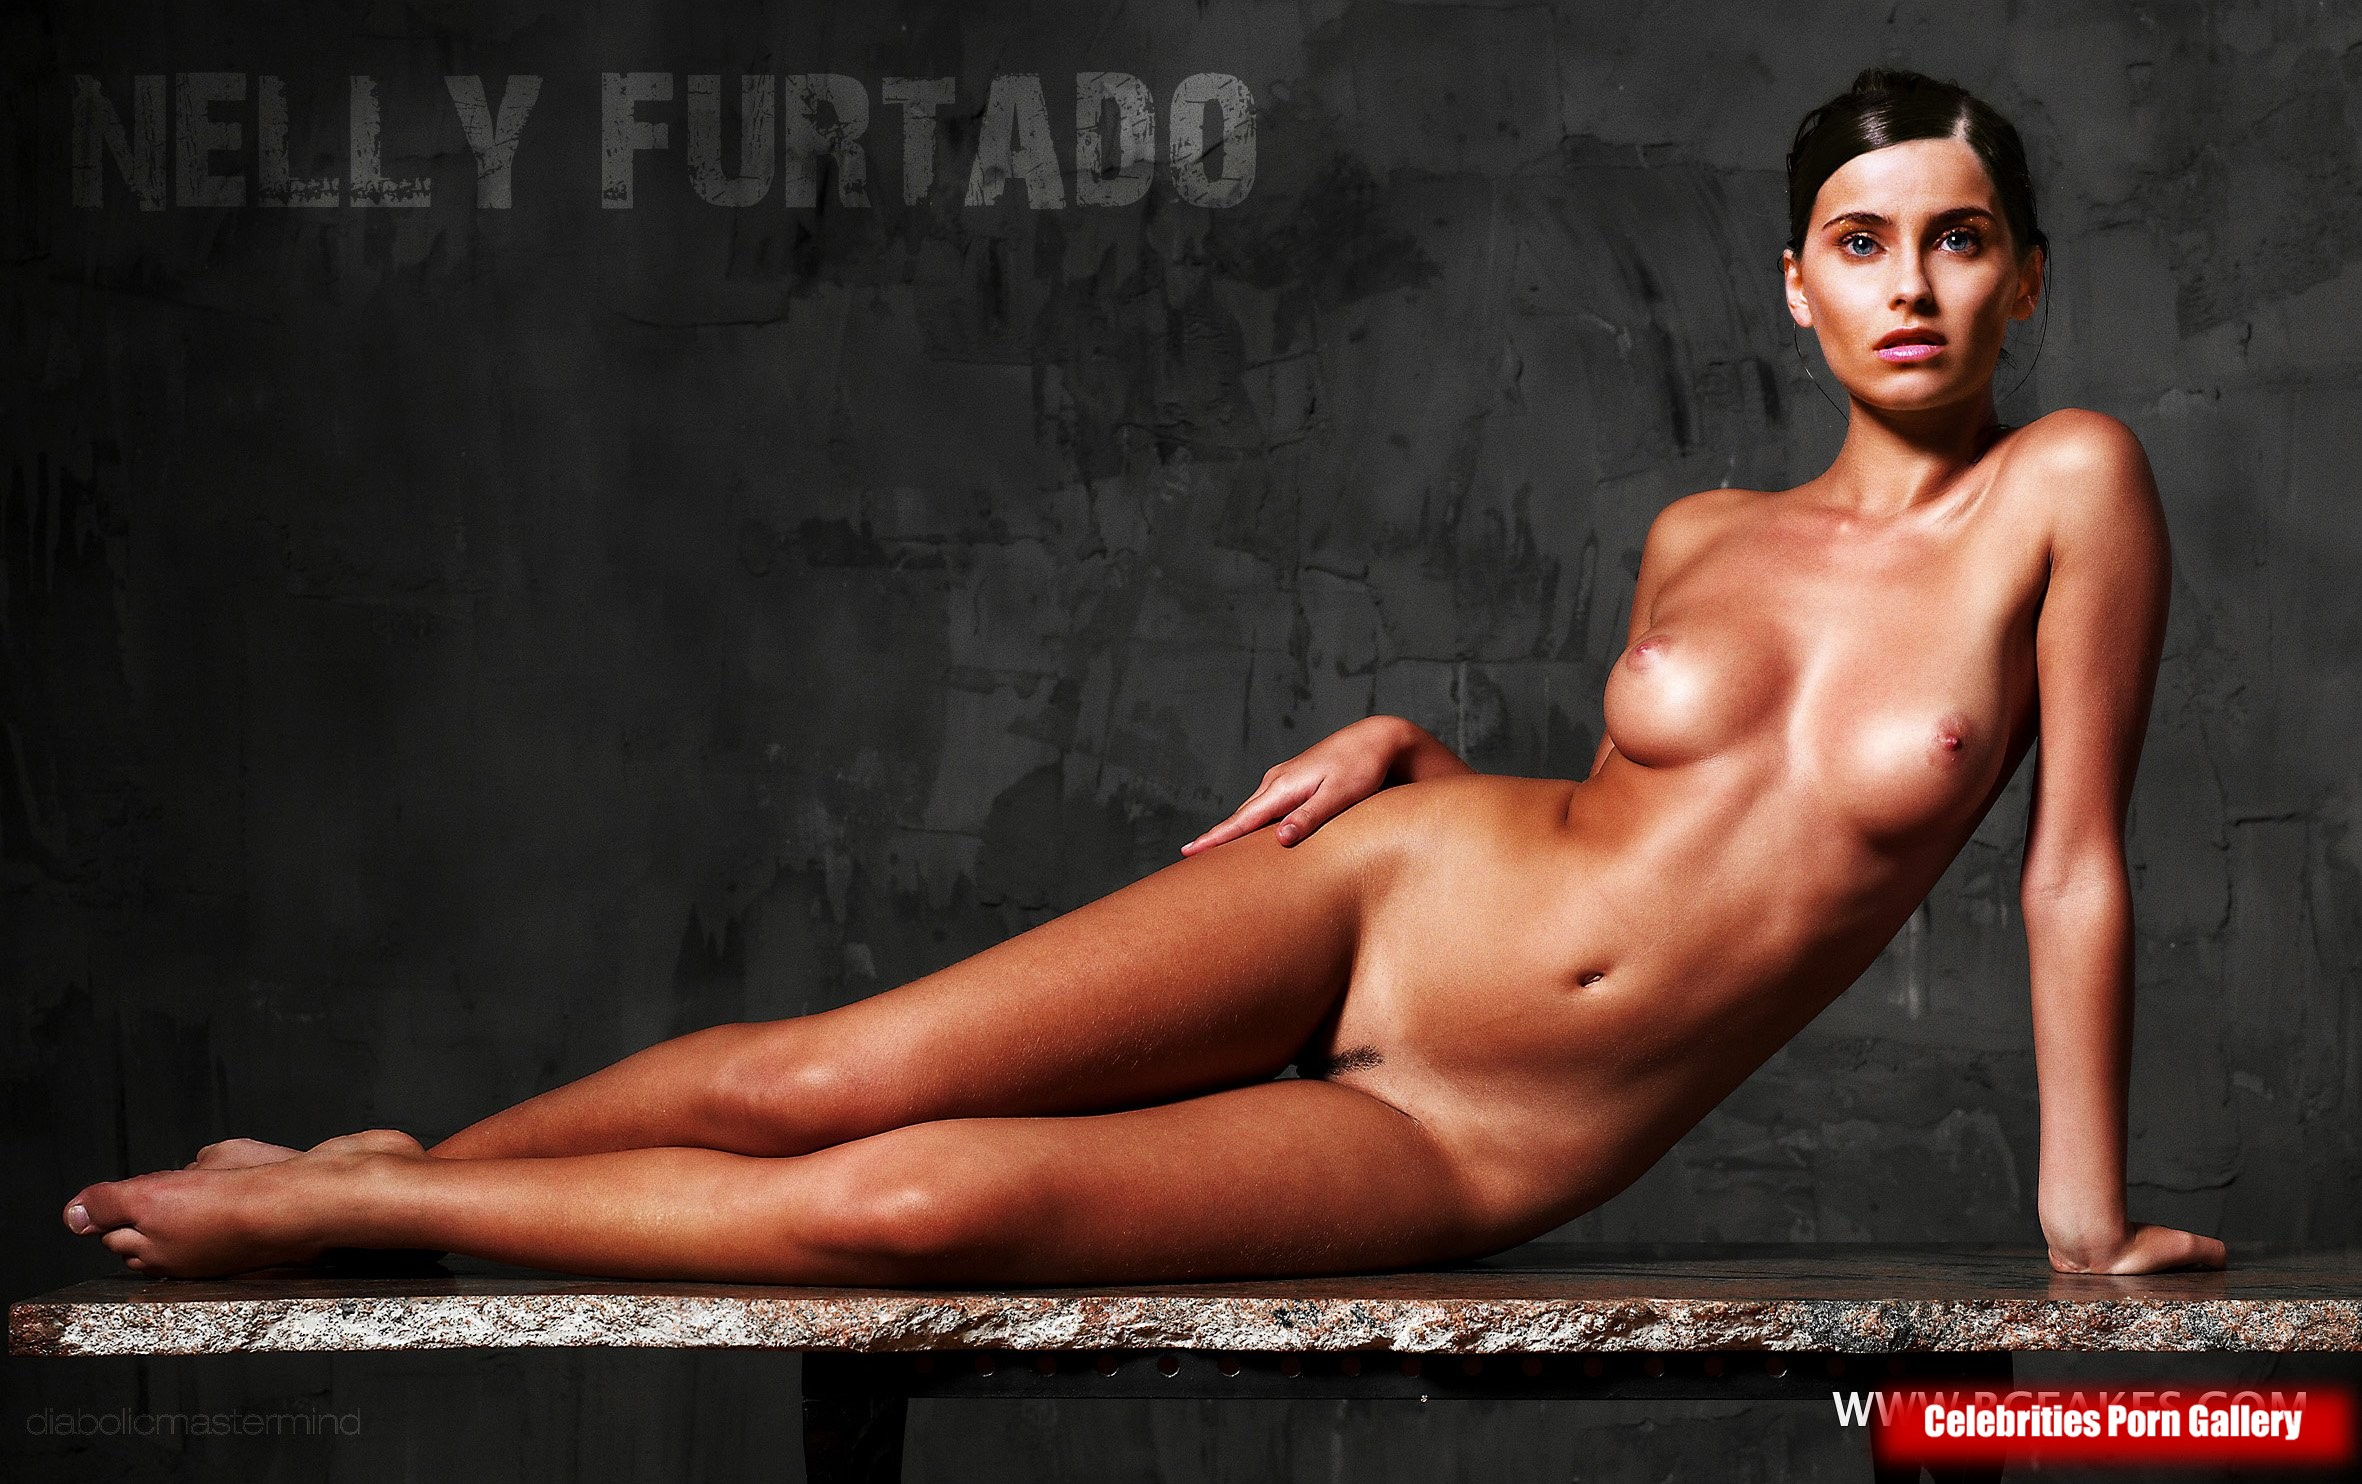 Nelly furtado naked pictures opinion